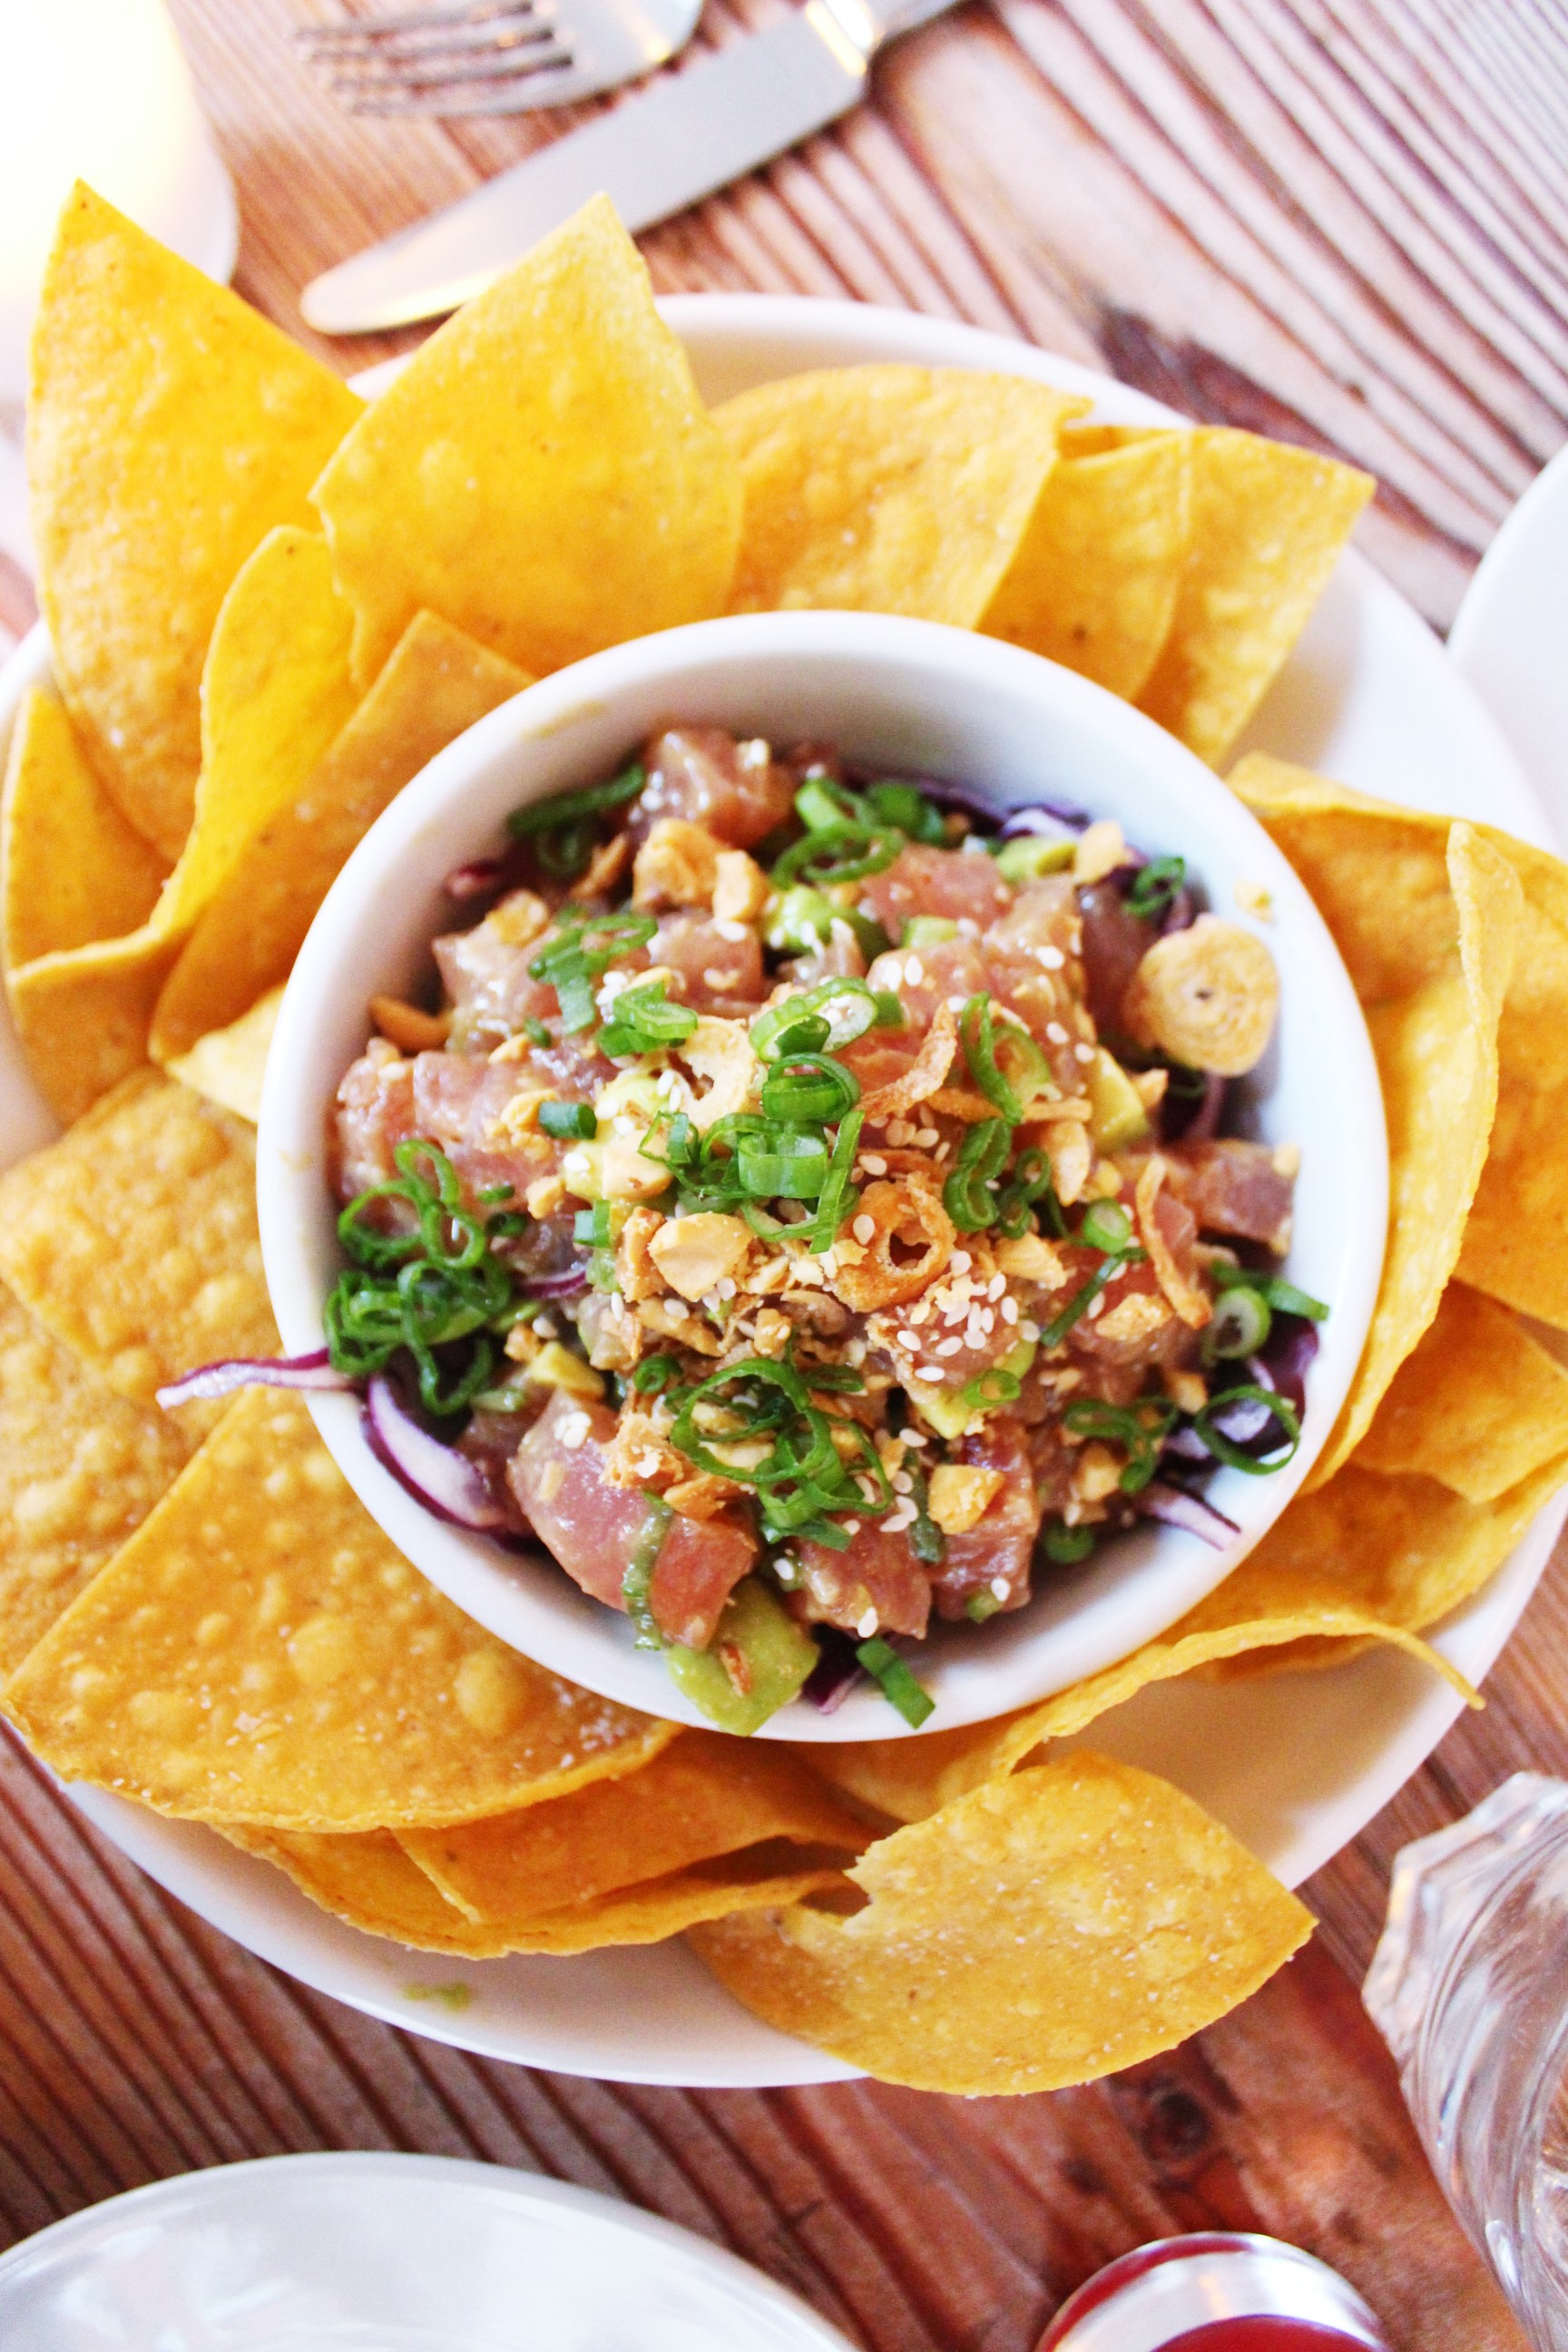 Poke with Ponzu, Peanuts, and Avocado at Seamore's in New York City